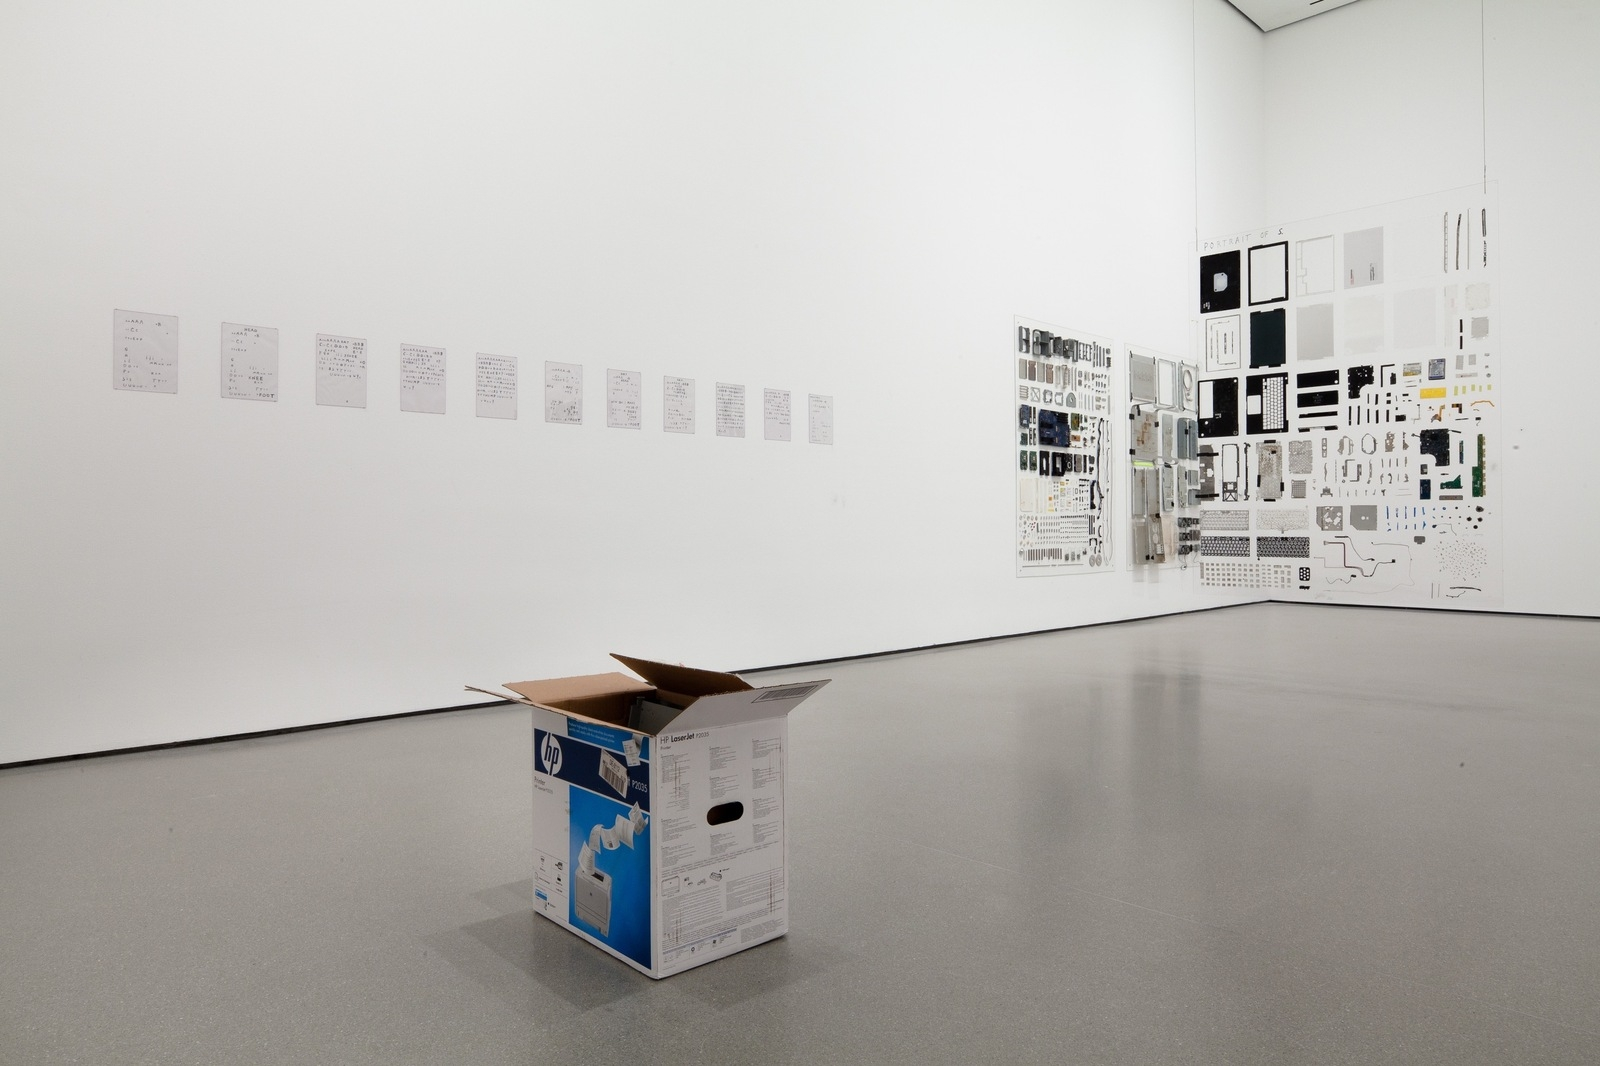 Installation view of Projects 94: Henrik Olesen. The Museum of Modern Art, NY image